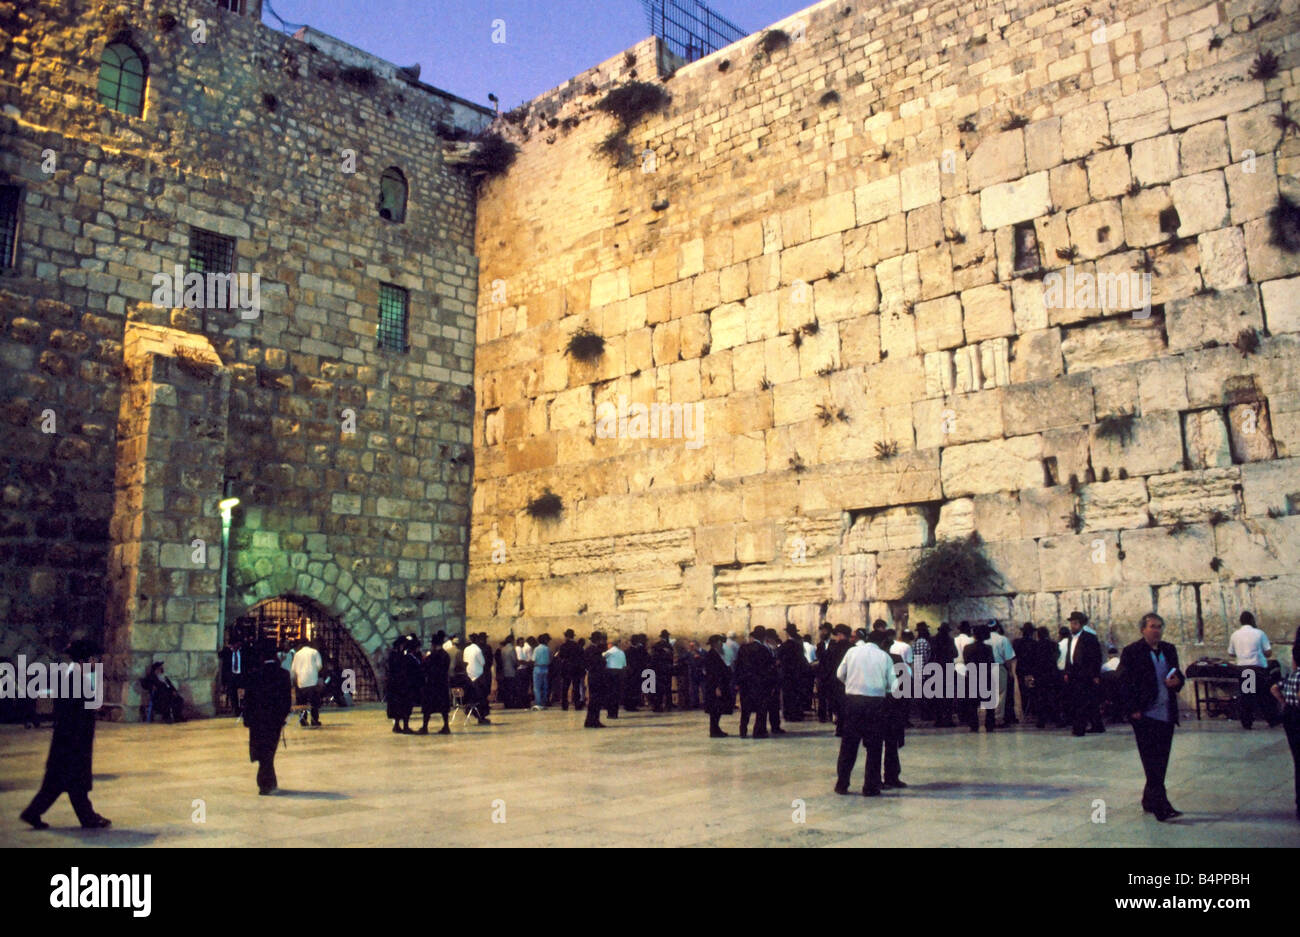 Israeli History Stock Photos & Israeli History Stock Images - Alamy